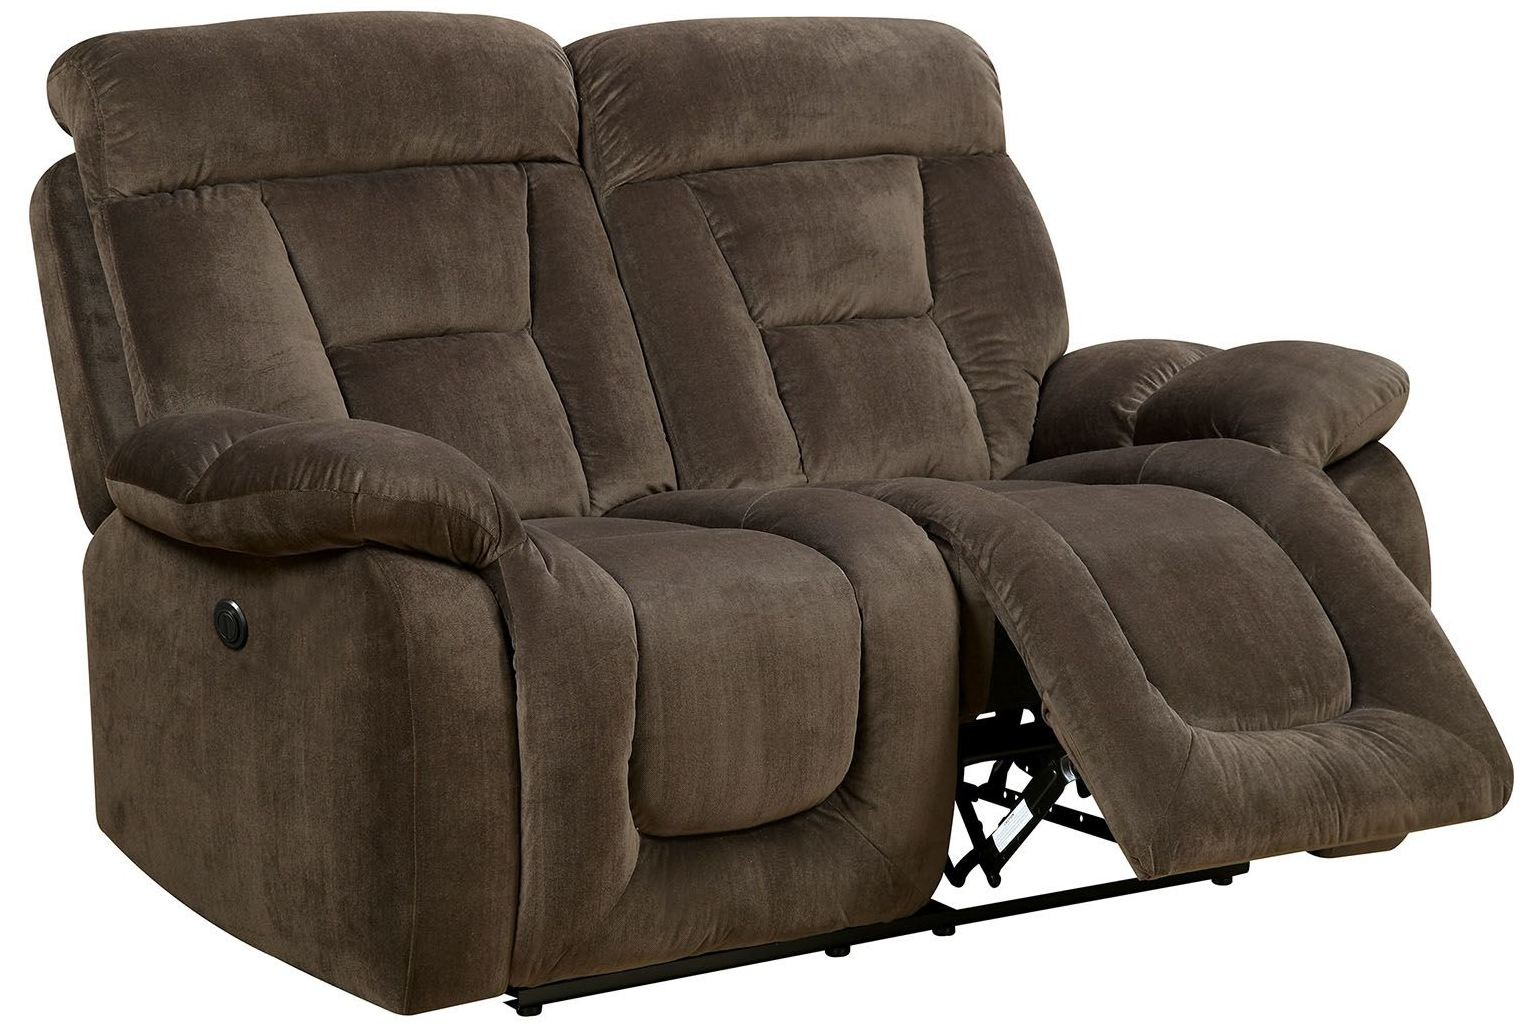 Bloomington Brown Power Reclining Loveseat From Furniture Of America Coleman Furniture